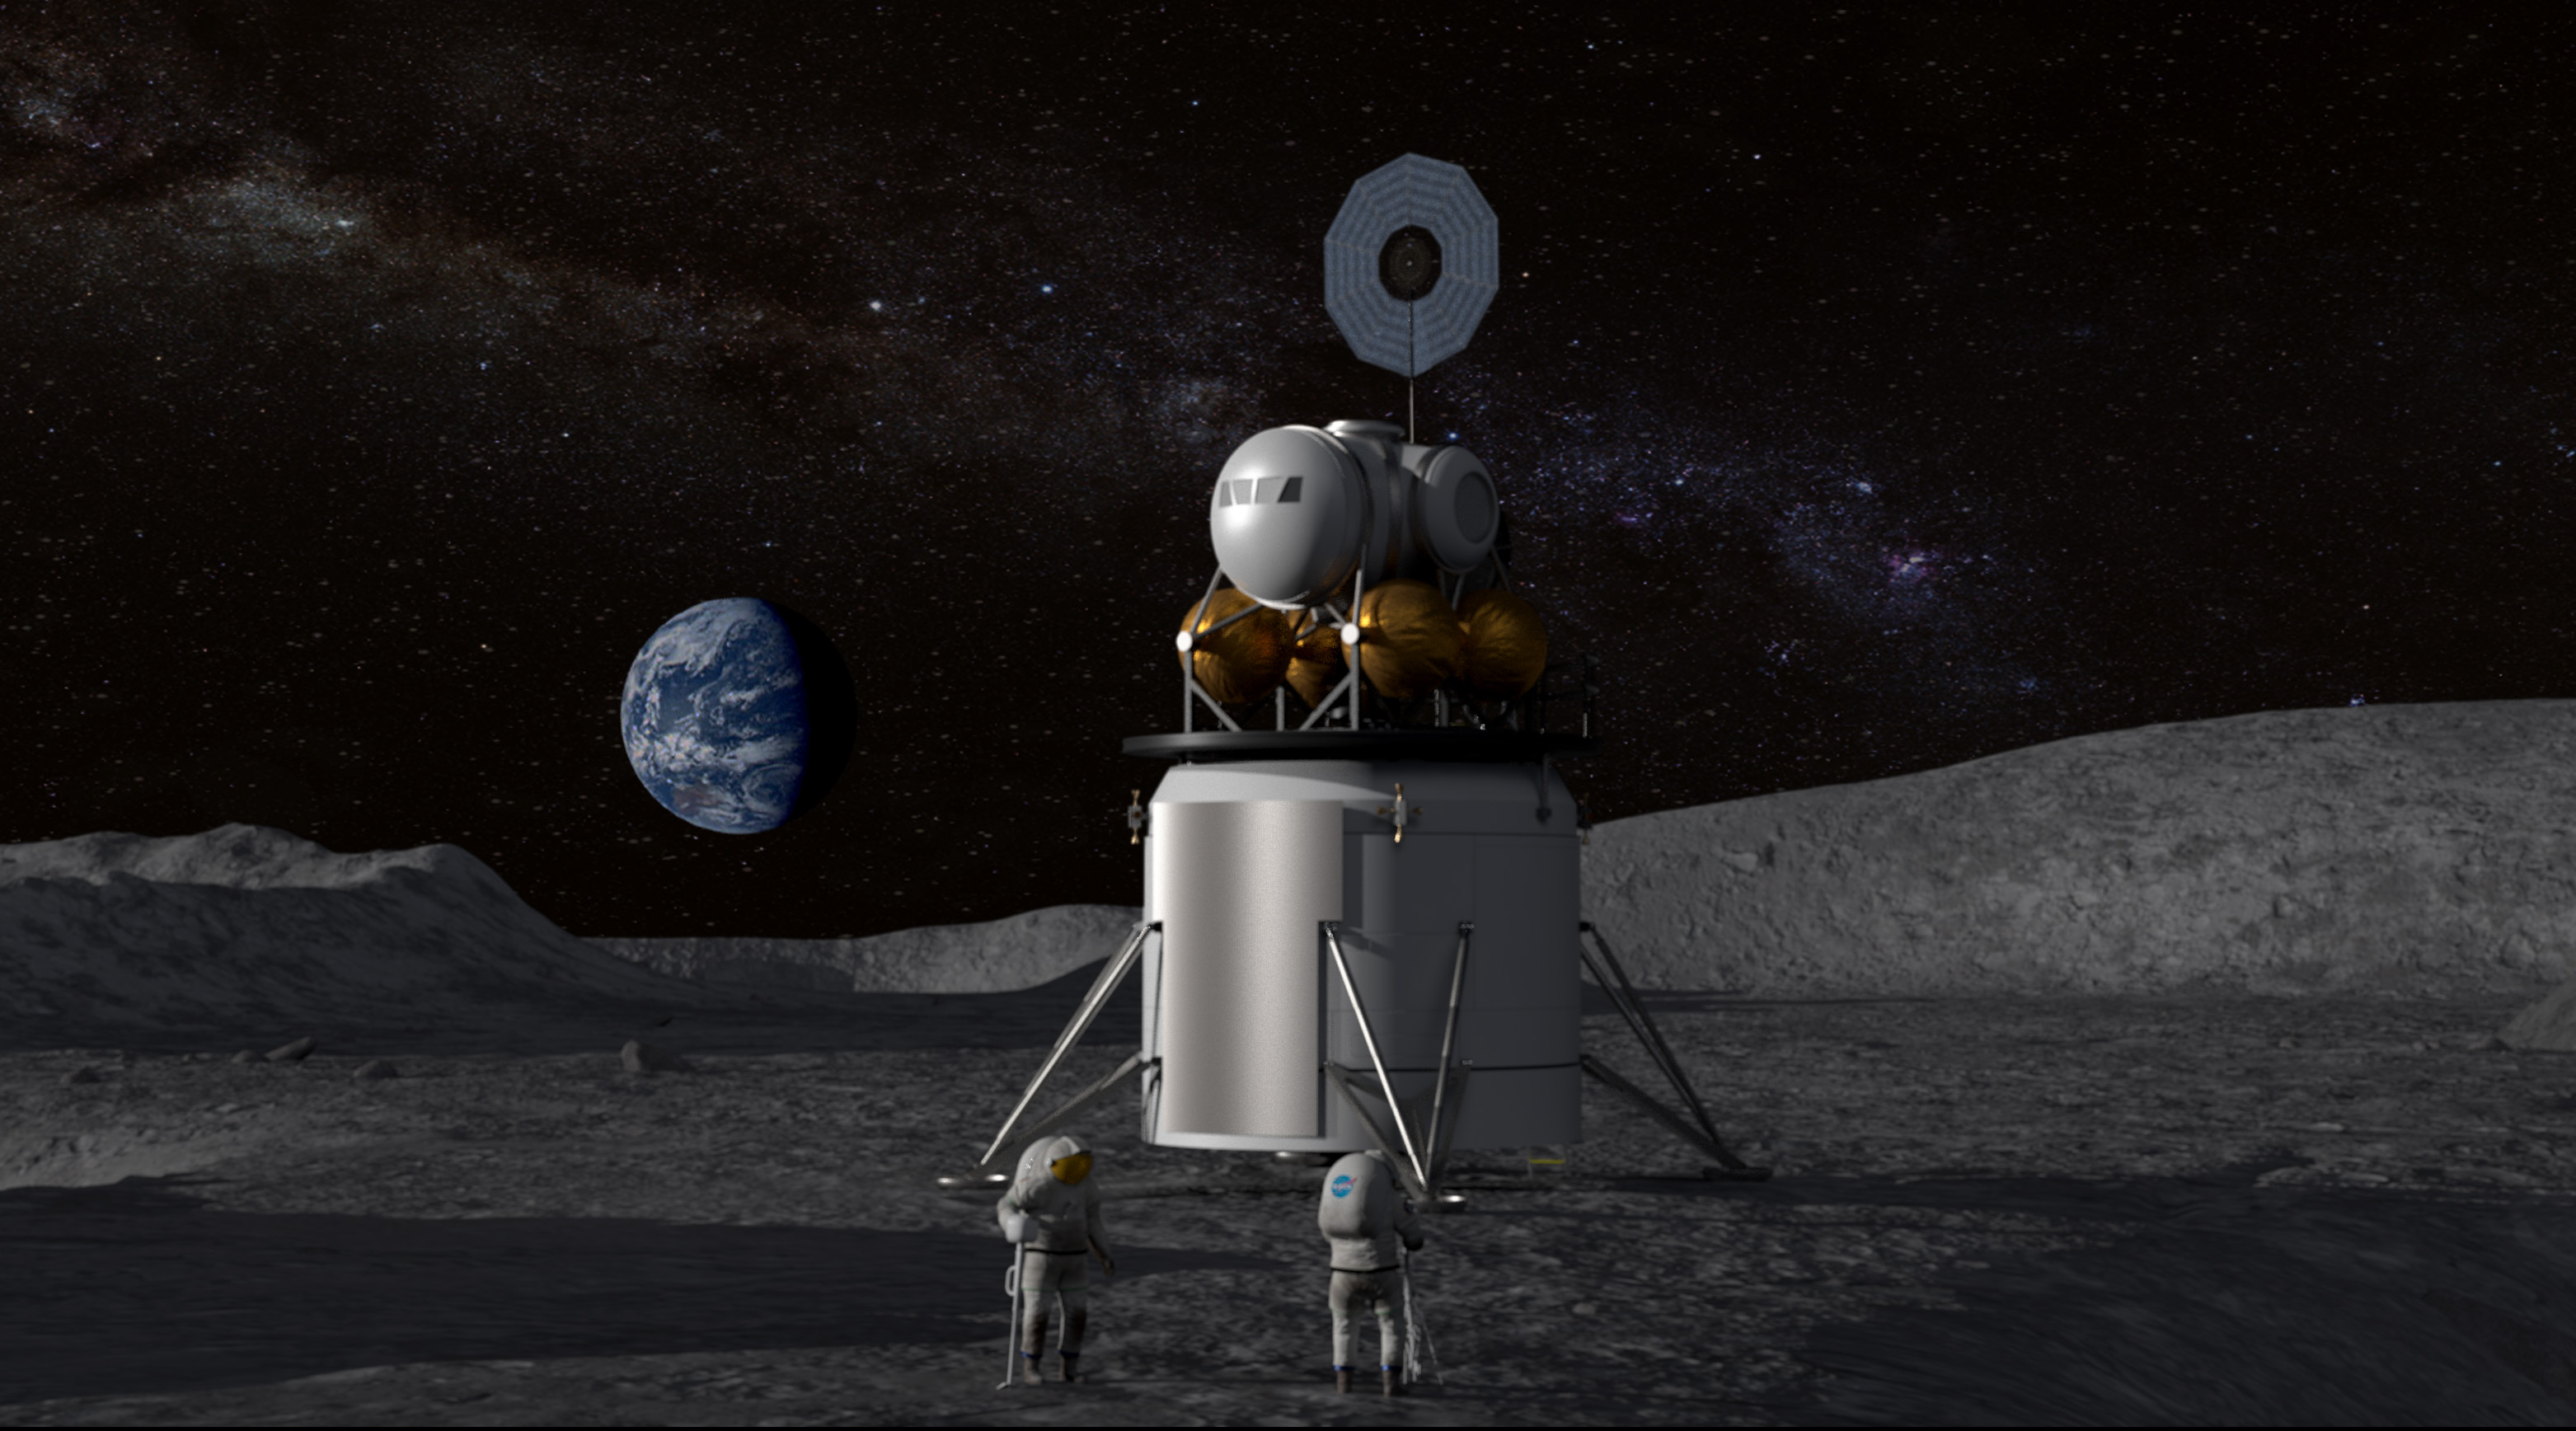 NASA Announces Industry Partnerships to Advance Moon, Mars